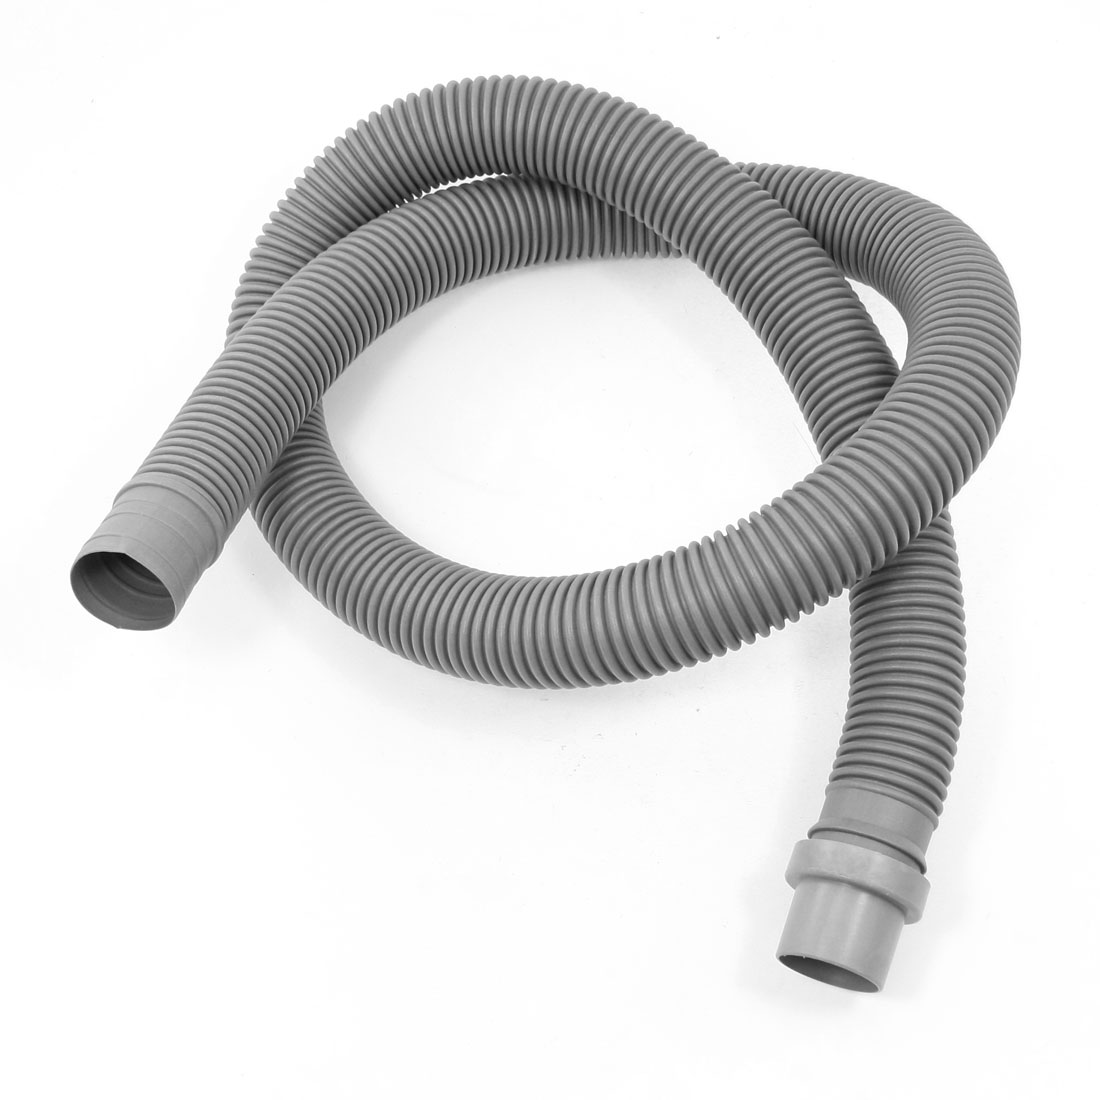 Spare Components Gray Plastic Flexible 1.3 Meter Drain Hose for Washer